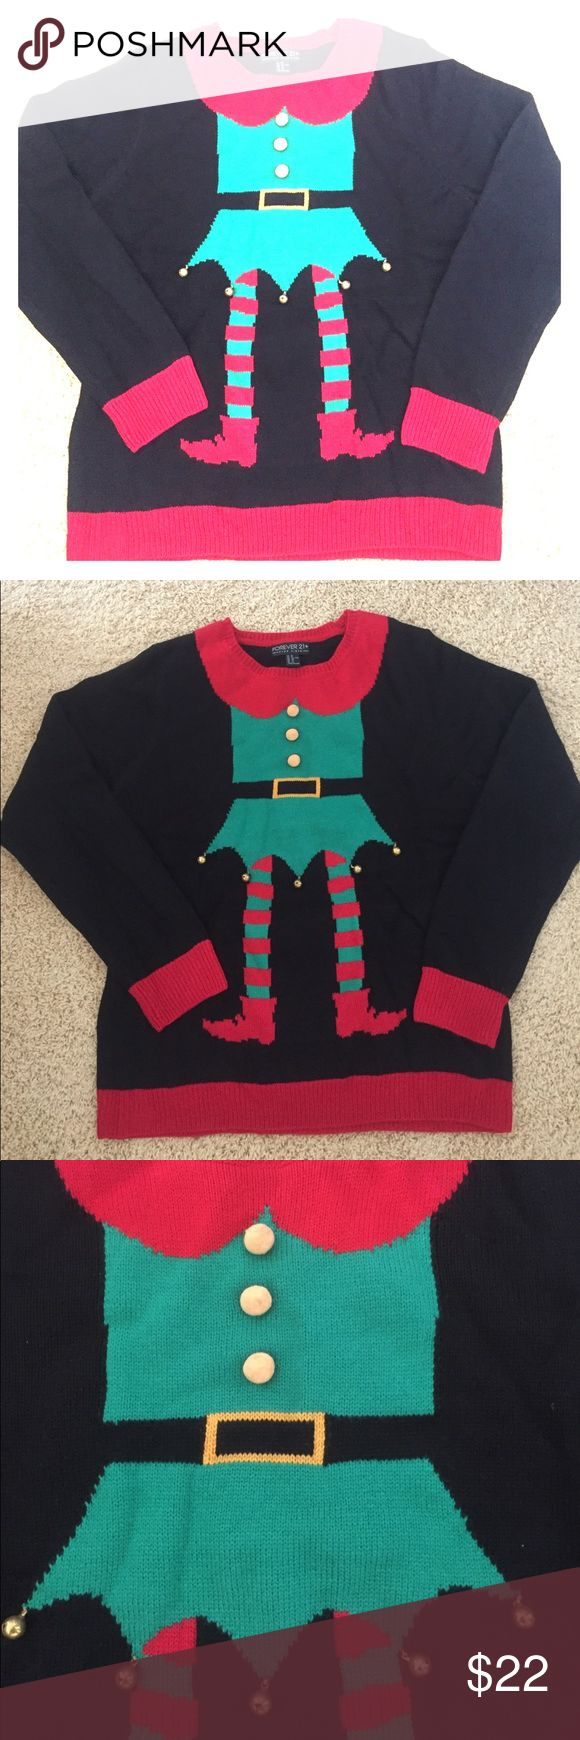 🎄🎉ELF YOURSELF🤗 sweater 🎄🎉super fun and festive ELF YOURSELF🤗 knit sweater!!!! FOREVER21 does not disappoint! Added bells to the bottom of the elf dress for an extra jingle! A guaranteed hit of the Xmas party🎄☃️❄️🎁 Forever 21 Sweaters Crew & Scoop Necks